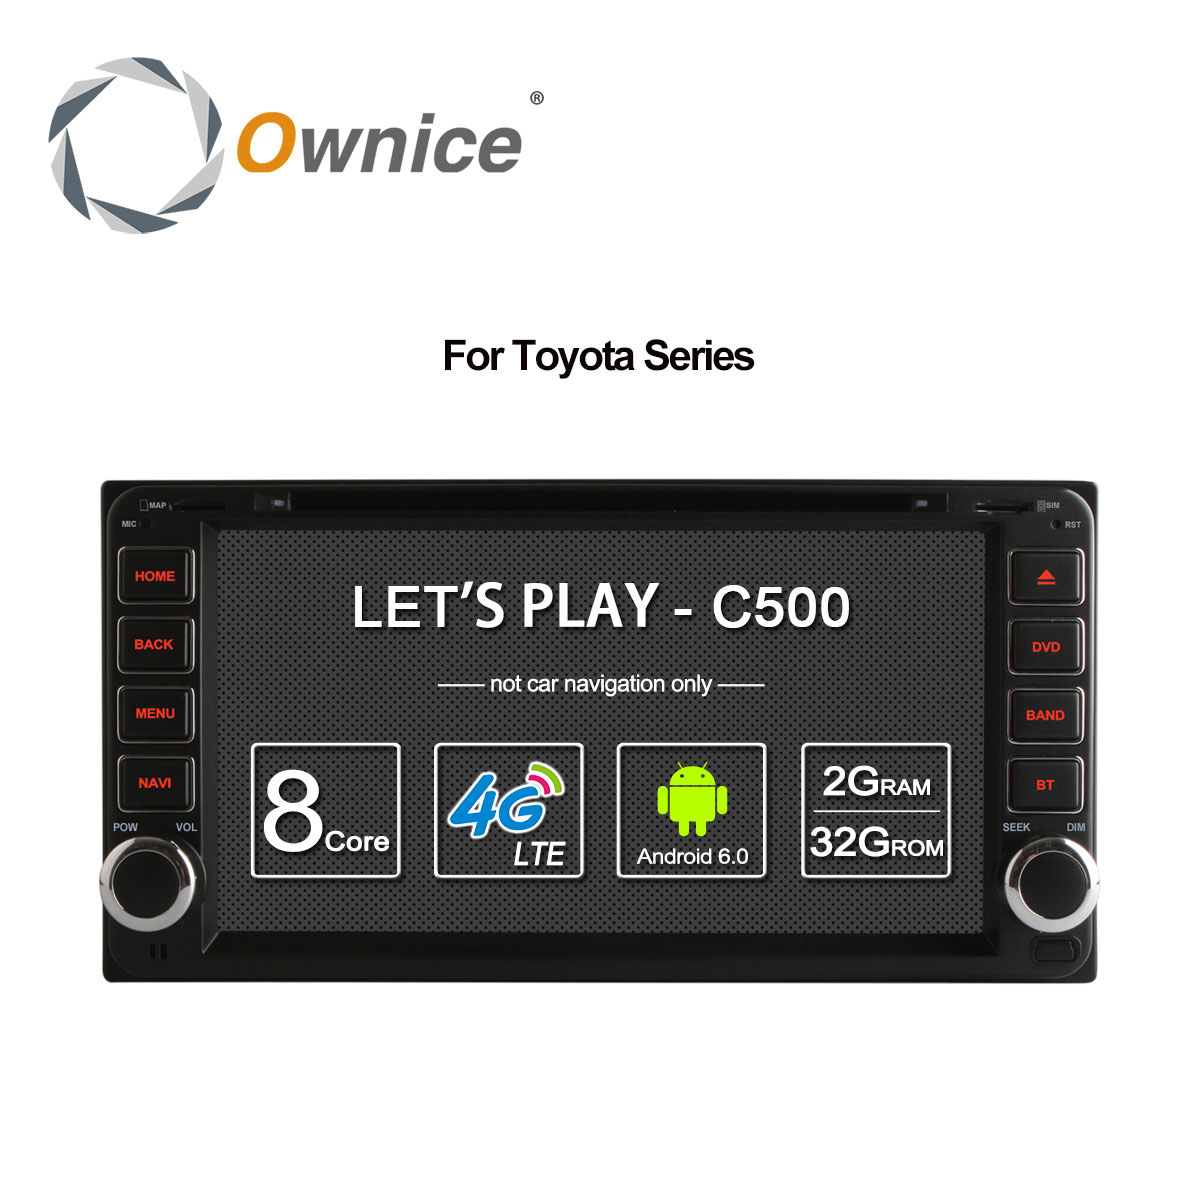 Ownice Android 6 0 Octa 8 Core 2G RAM car dvd player for font b Toyota